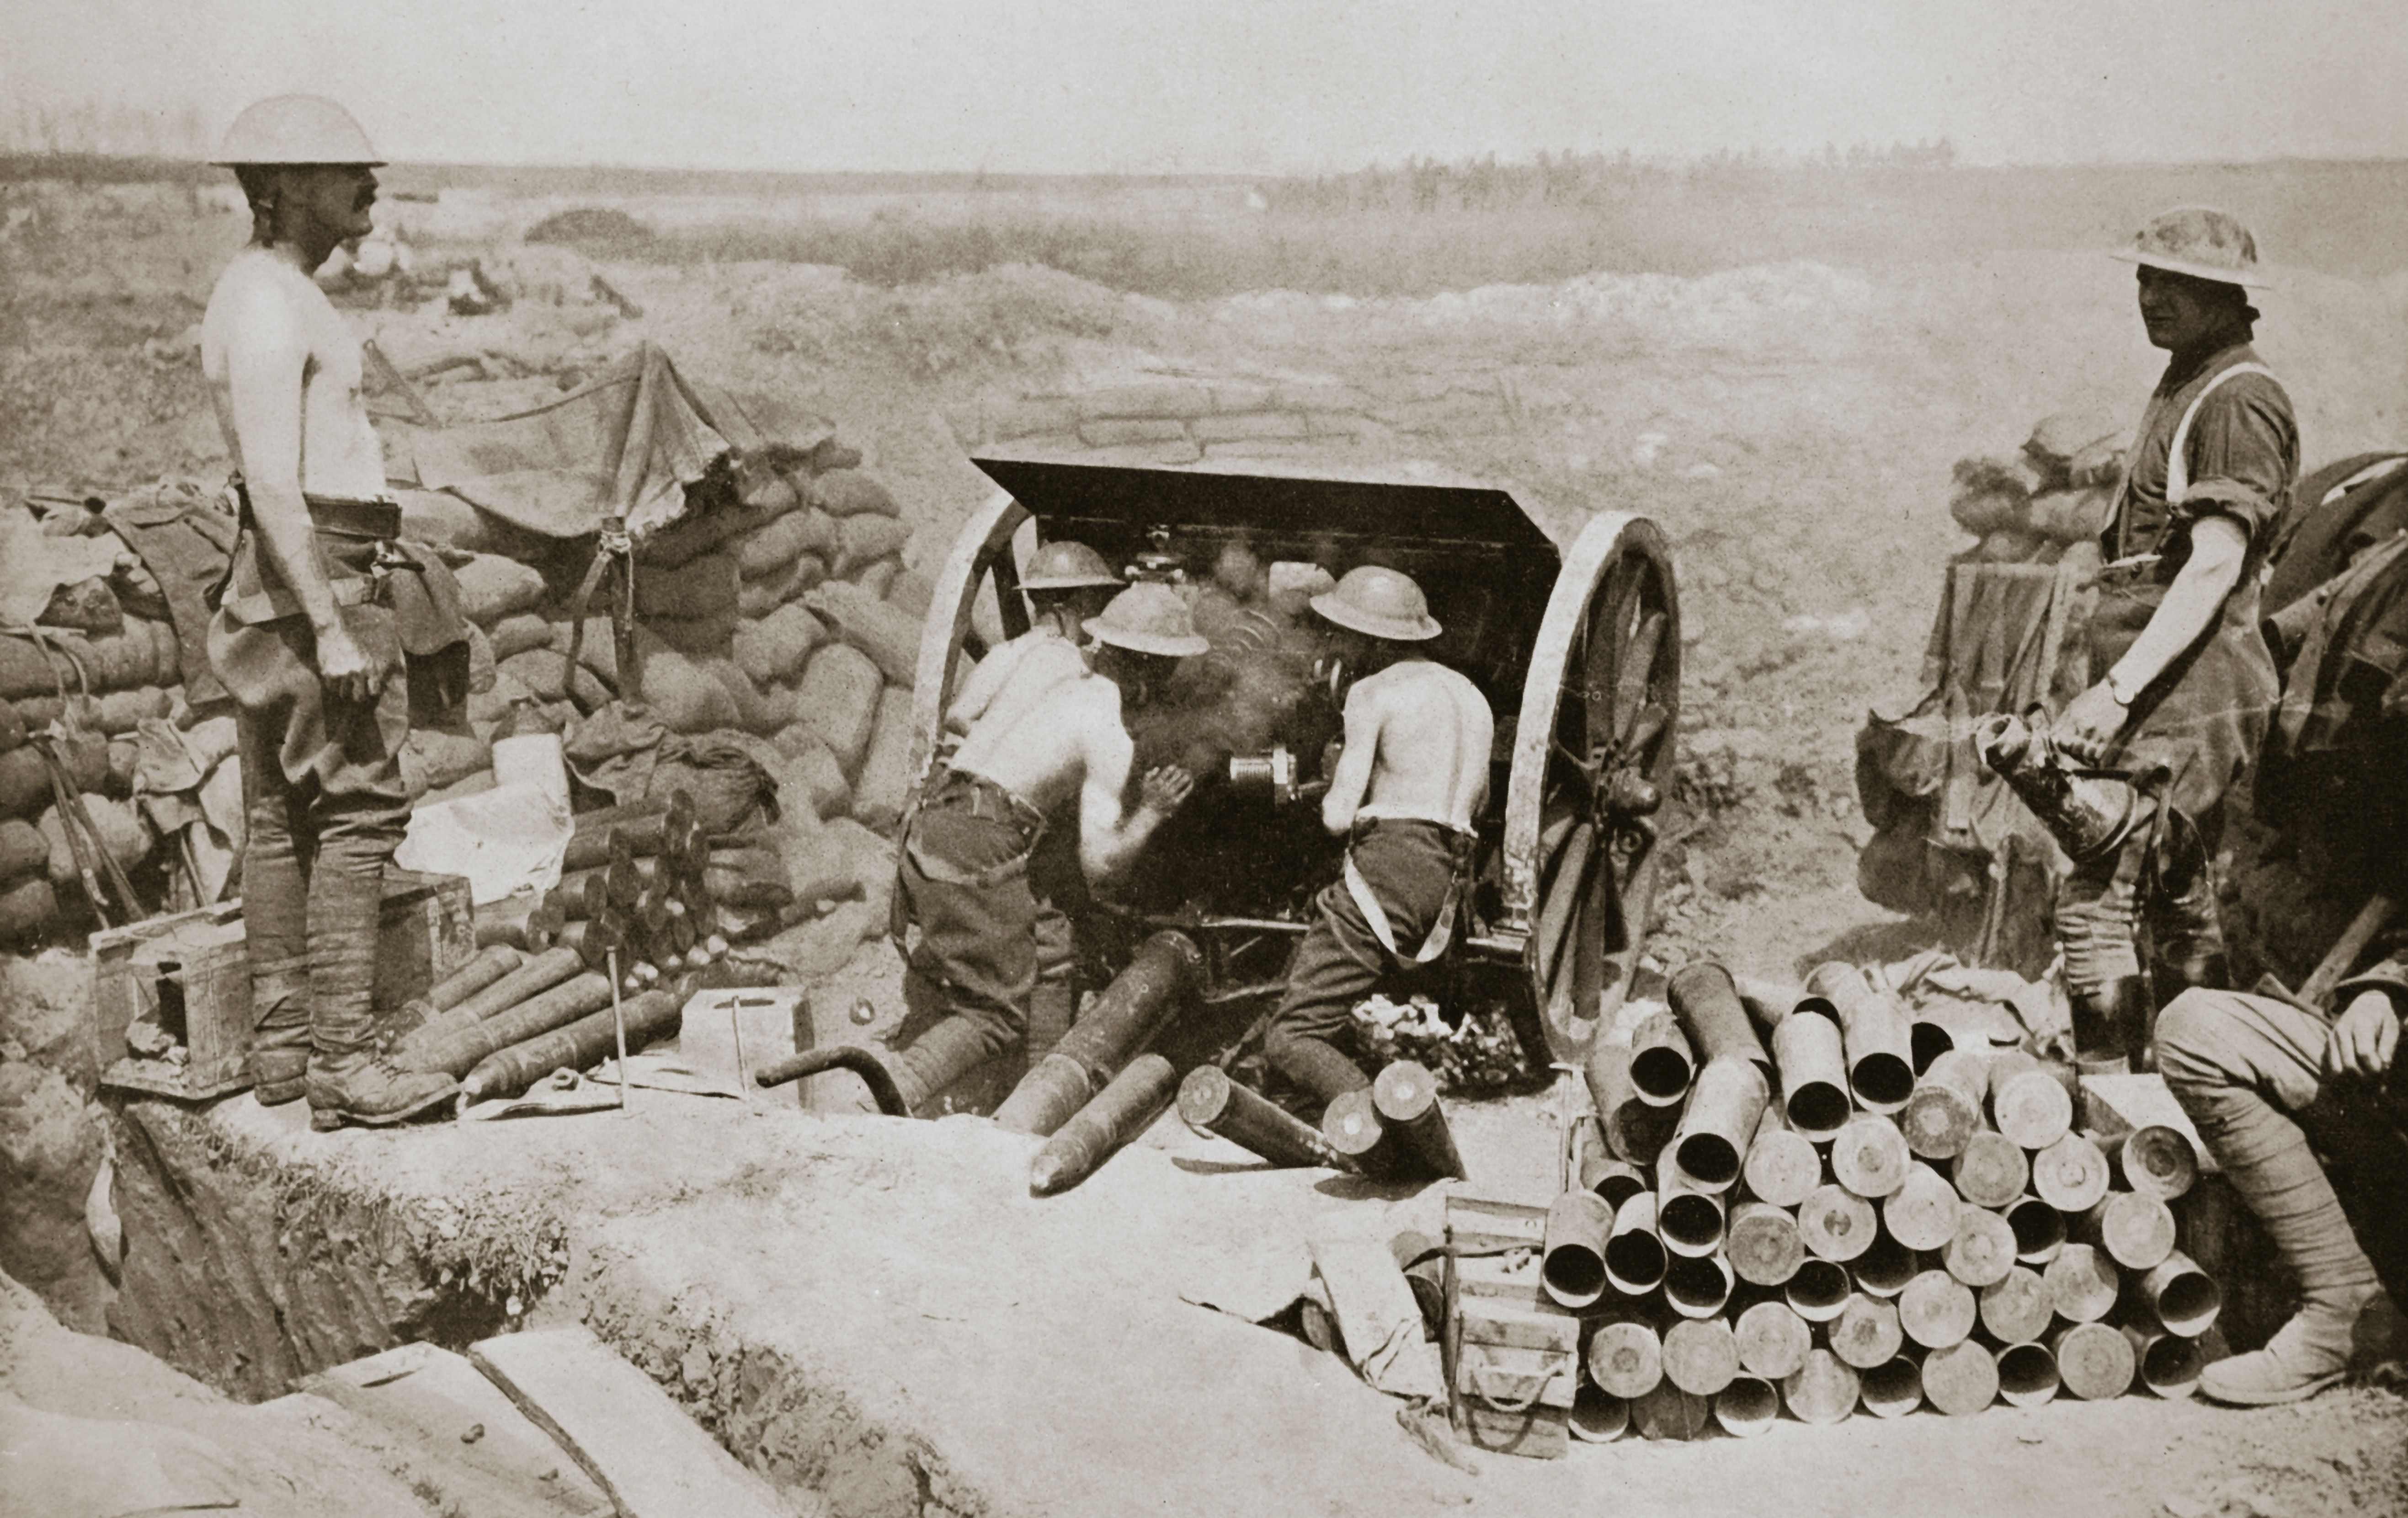 Hot Work At The Guns' Somme Campaign France World War I 1916